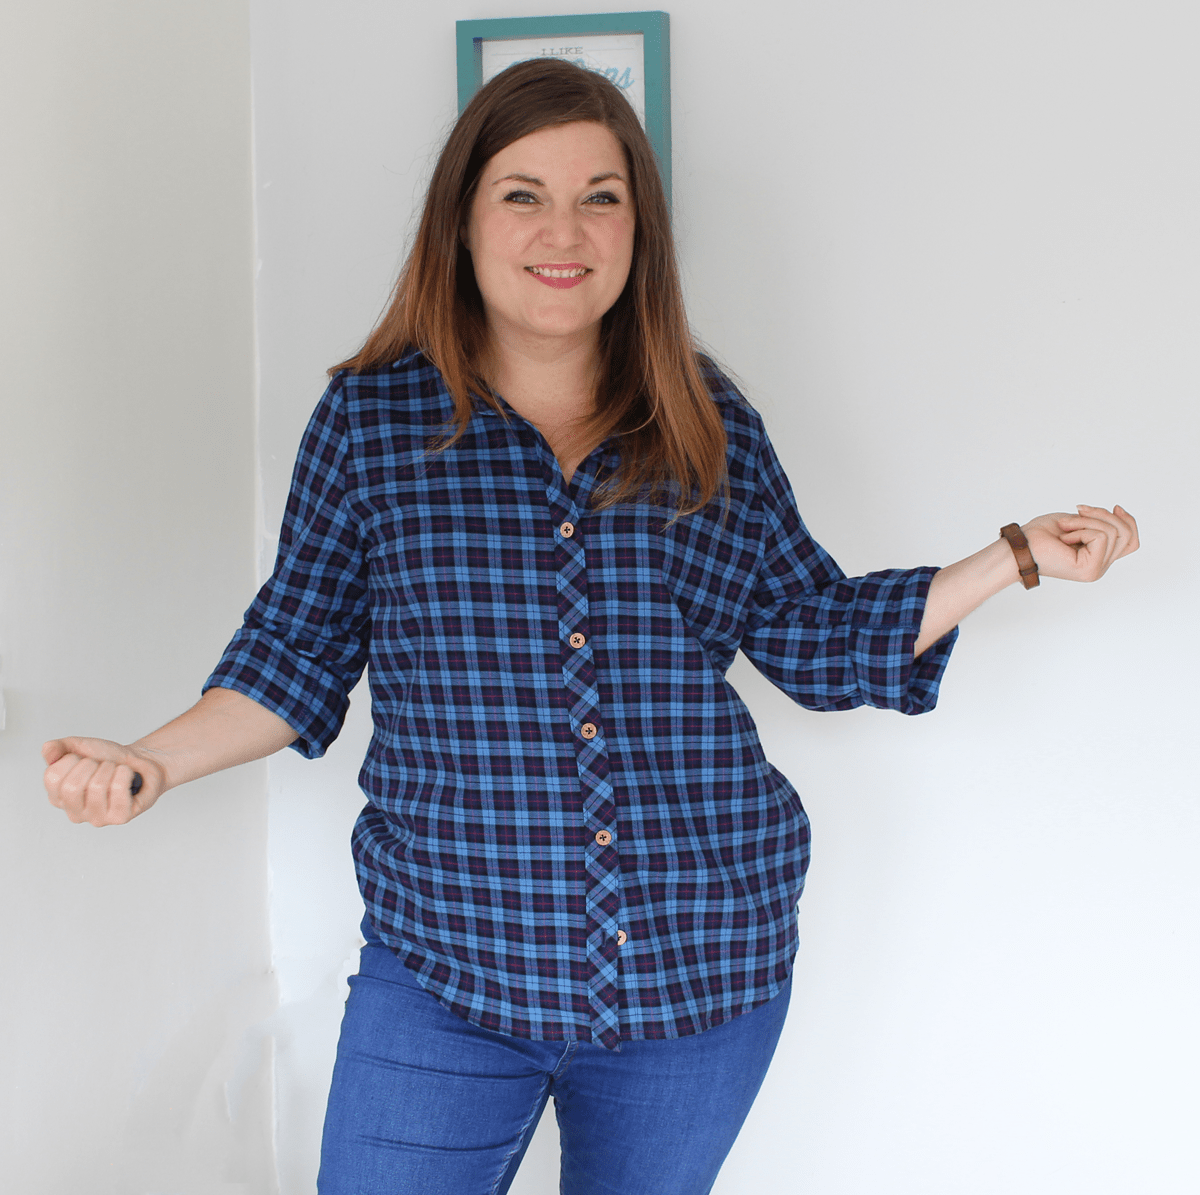 Grainline Archer button up shirt